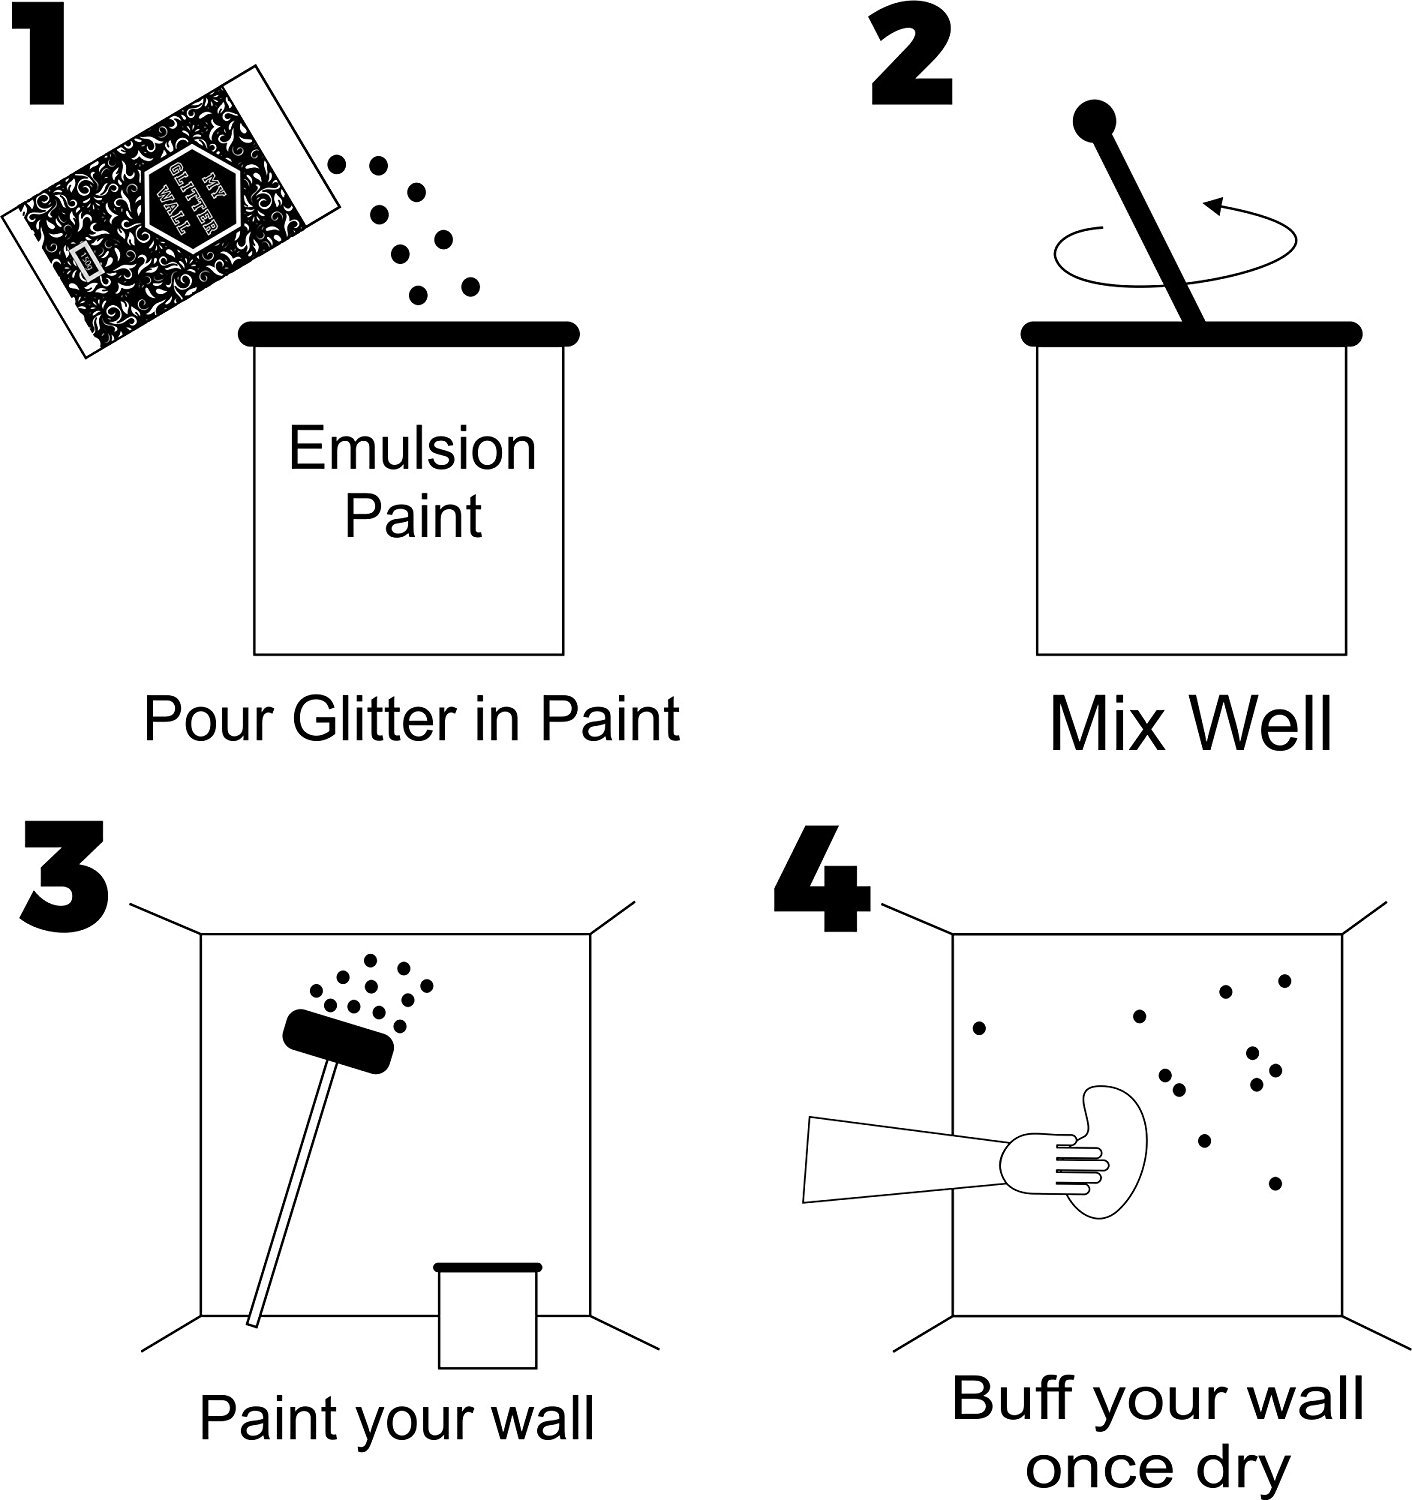 My Glitter Wall Purpurina para pintura de emulsión, 150 g, decoración de pared ideal para interior y exterior, color plata: Amazon.es: Bricolaje y ...